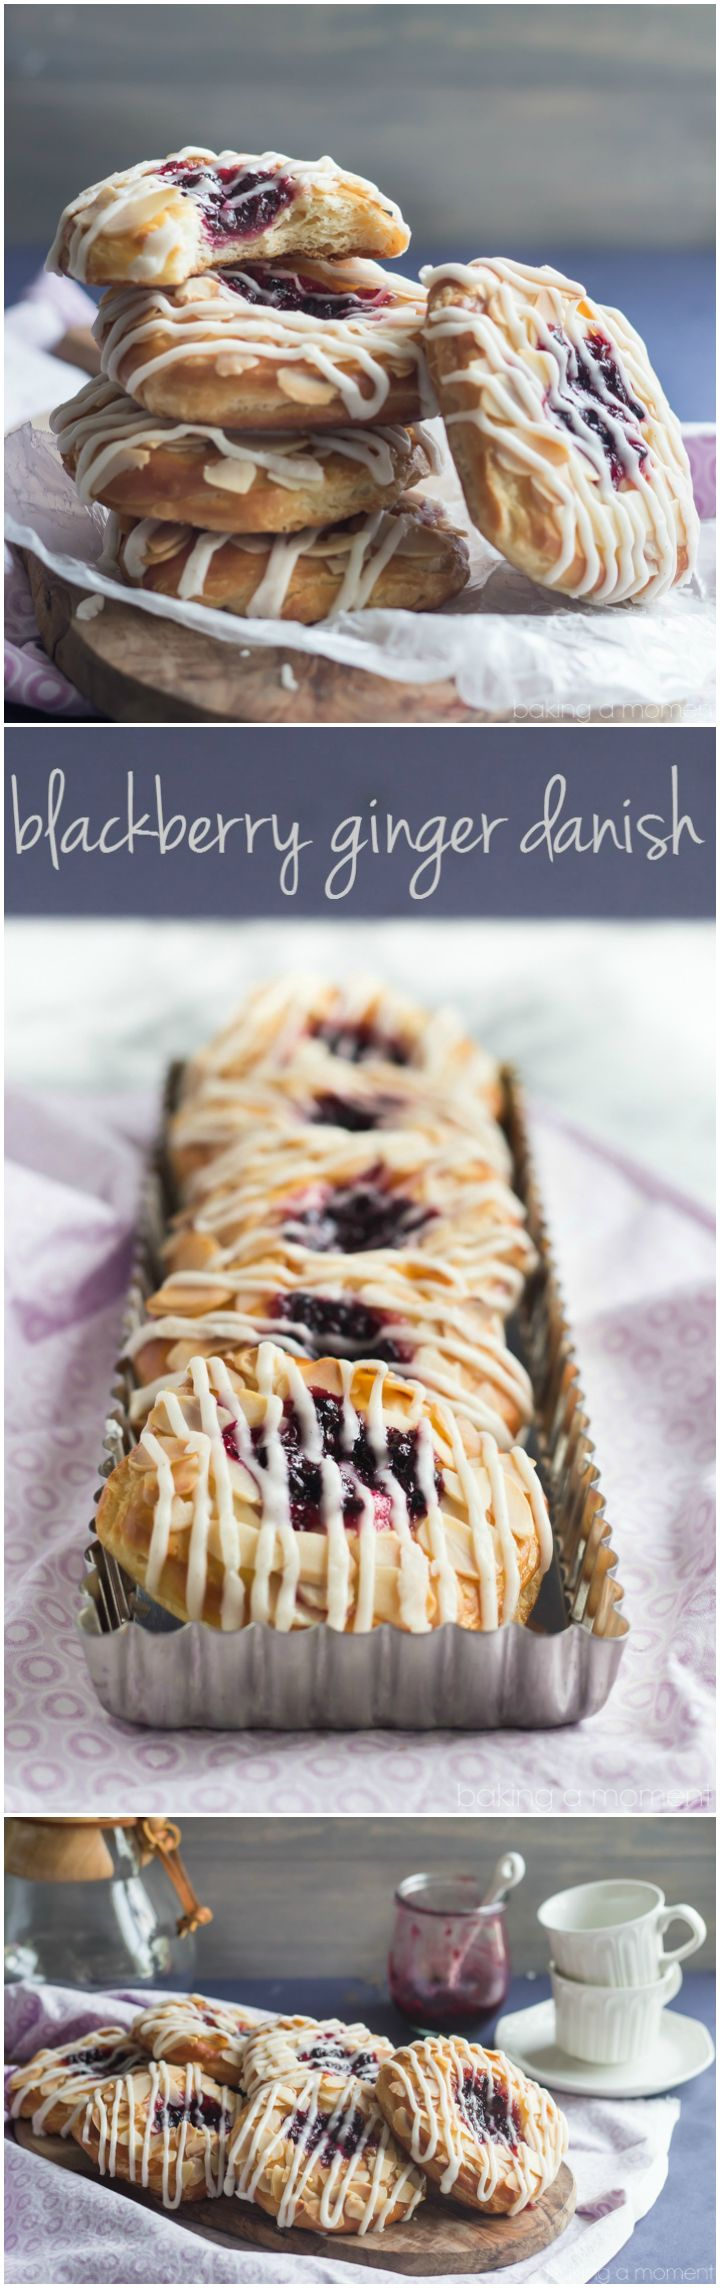 Blackberry Ginger Danish- The filling is a flavor bomb! So crazy good with that buttery pastry and then the toasted almonds and vanilla bean glaze. Definitely making these again! ~ http://bakingamoment.com